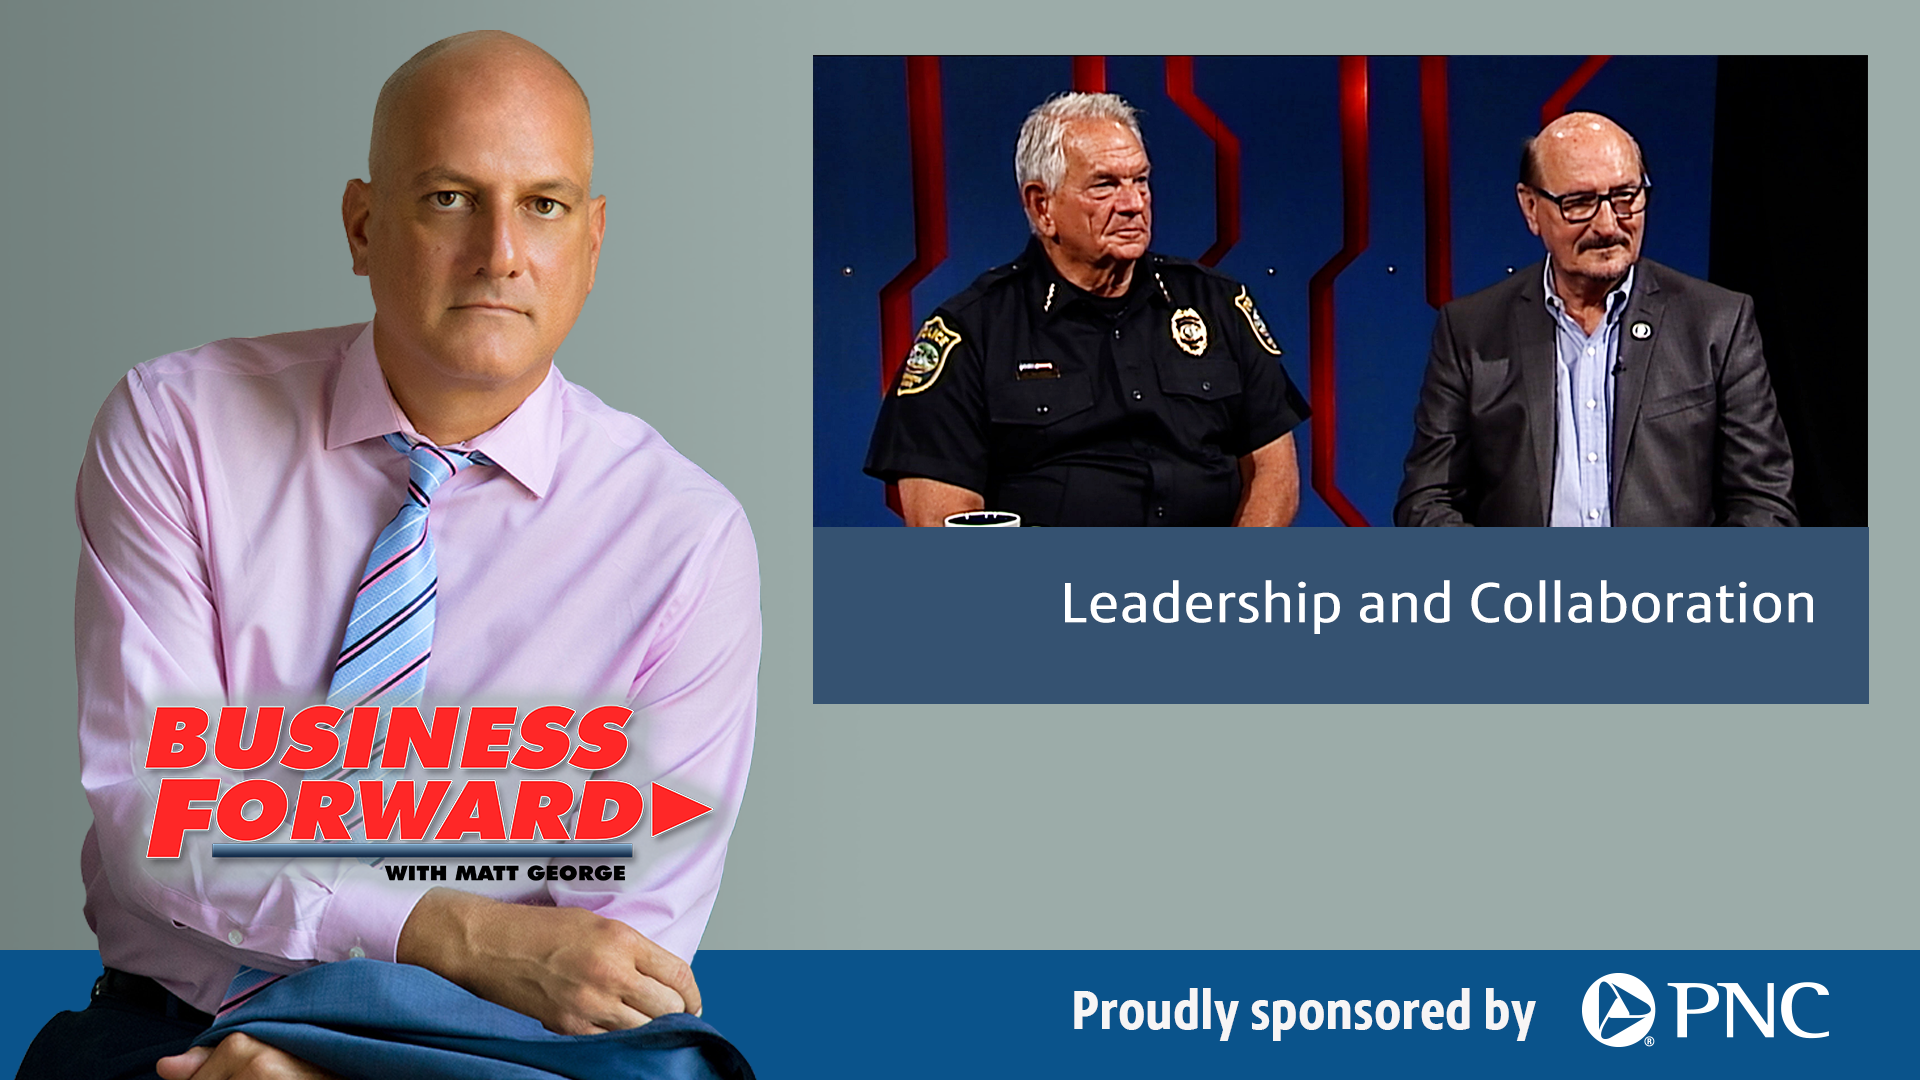 Business Forward with Matt George | Leadership and Collaboration